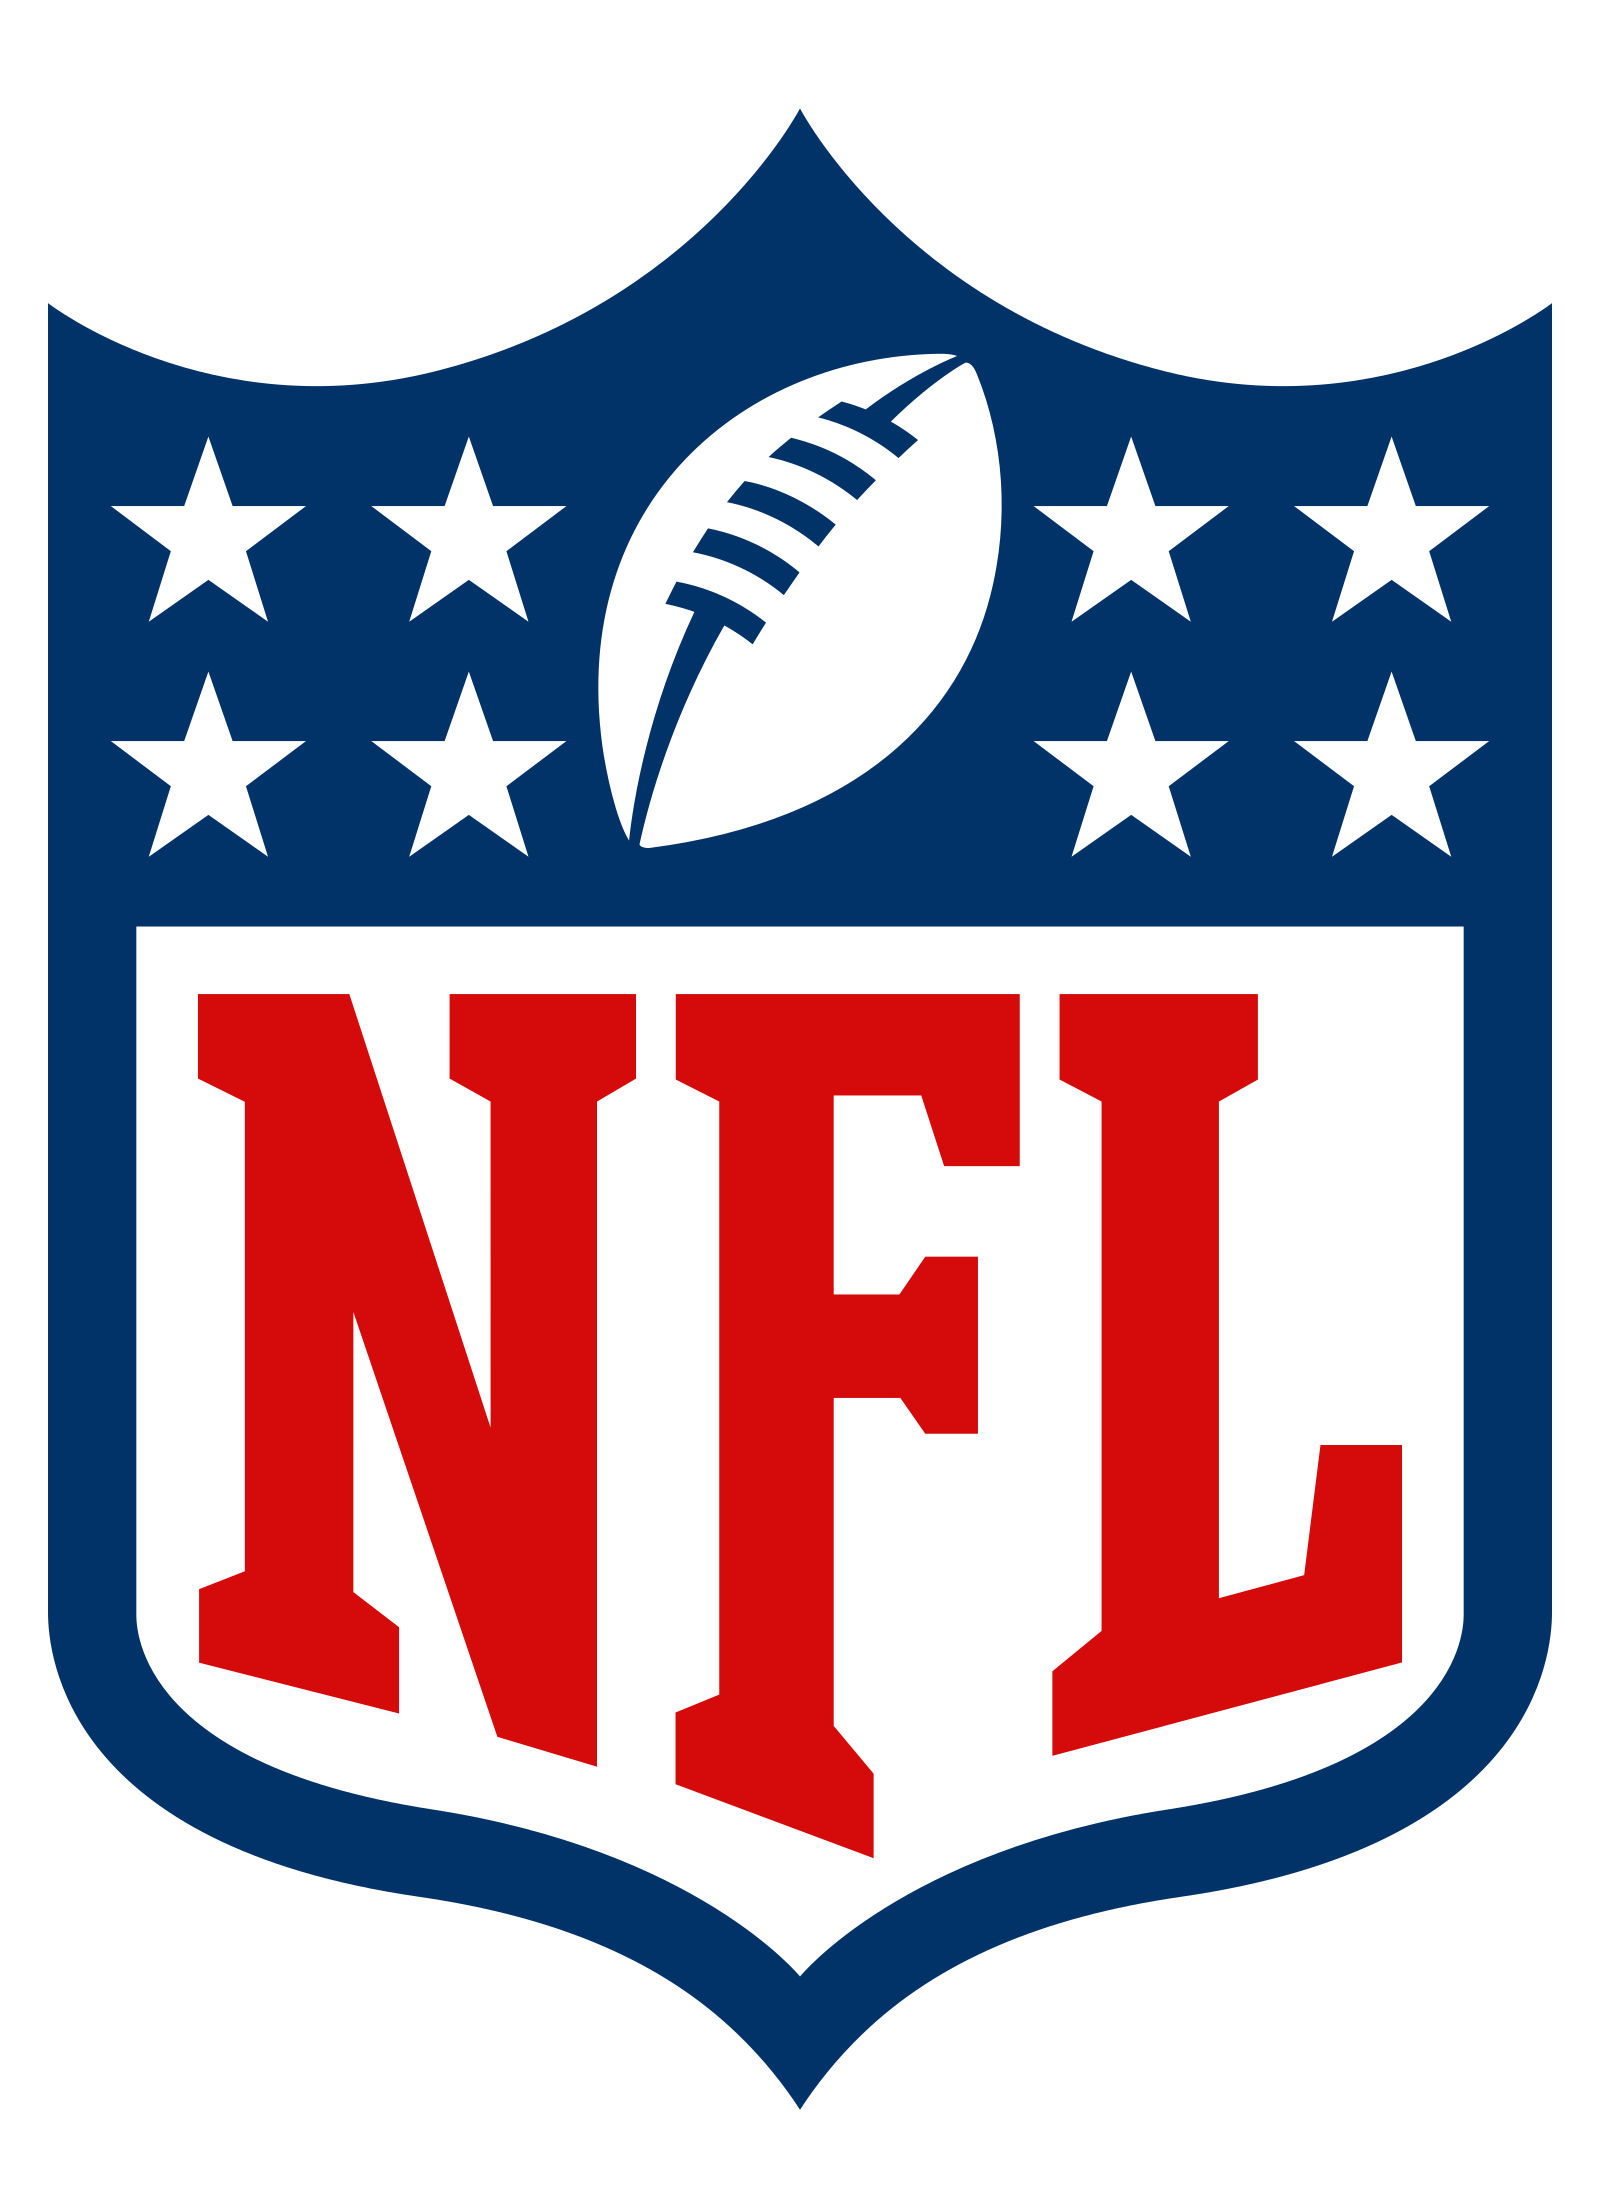 nfl logo 2 - NFL Logo - National Football League Logo